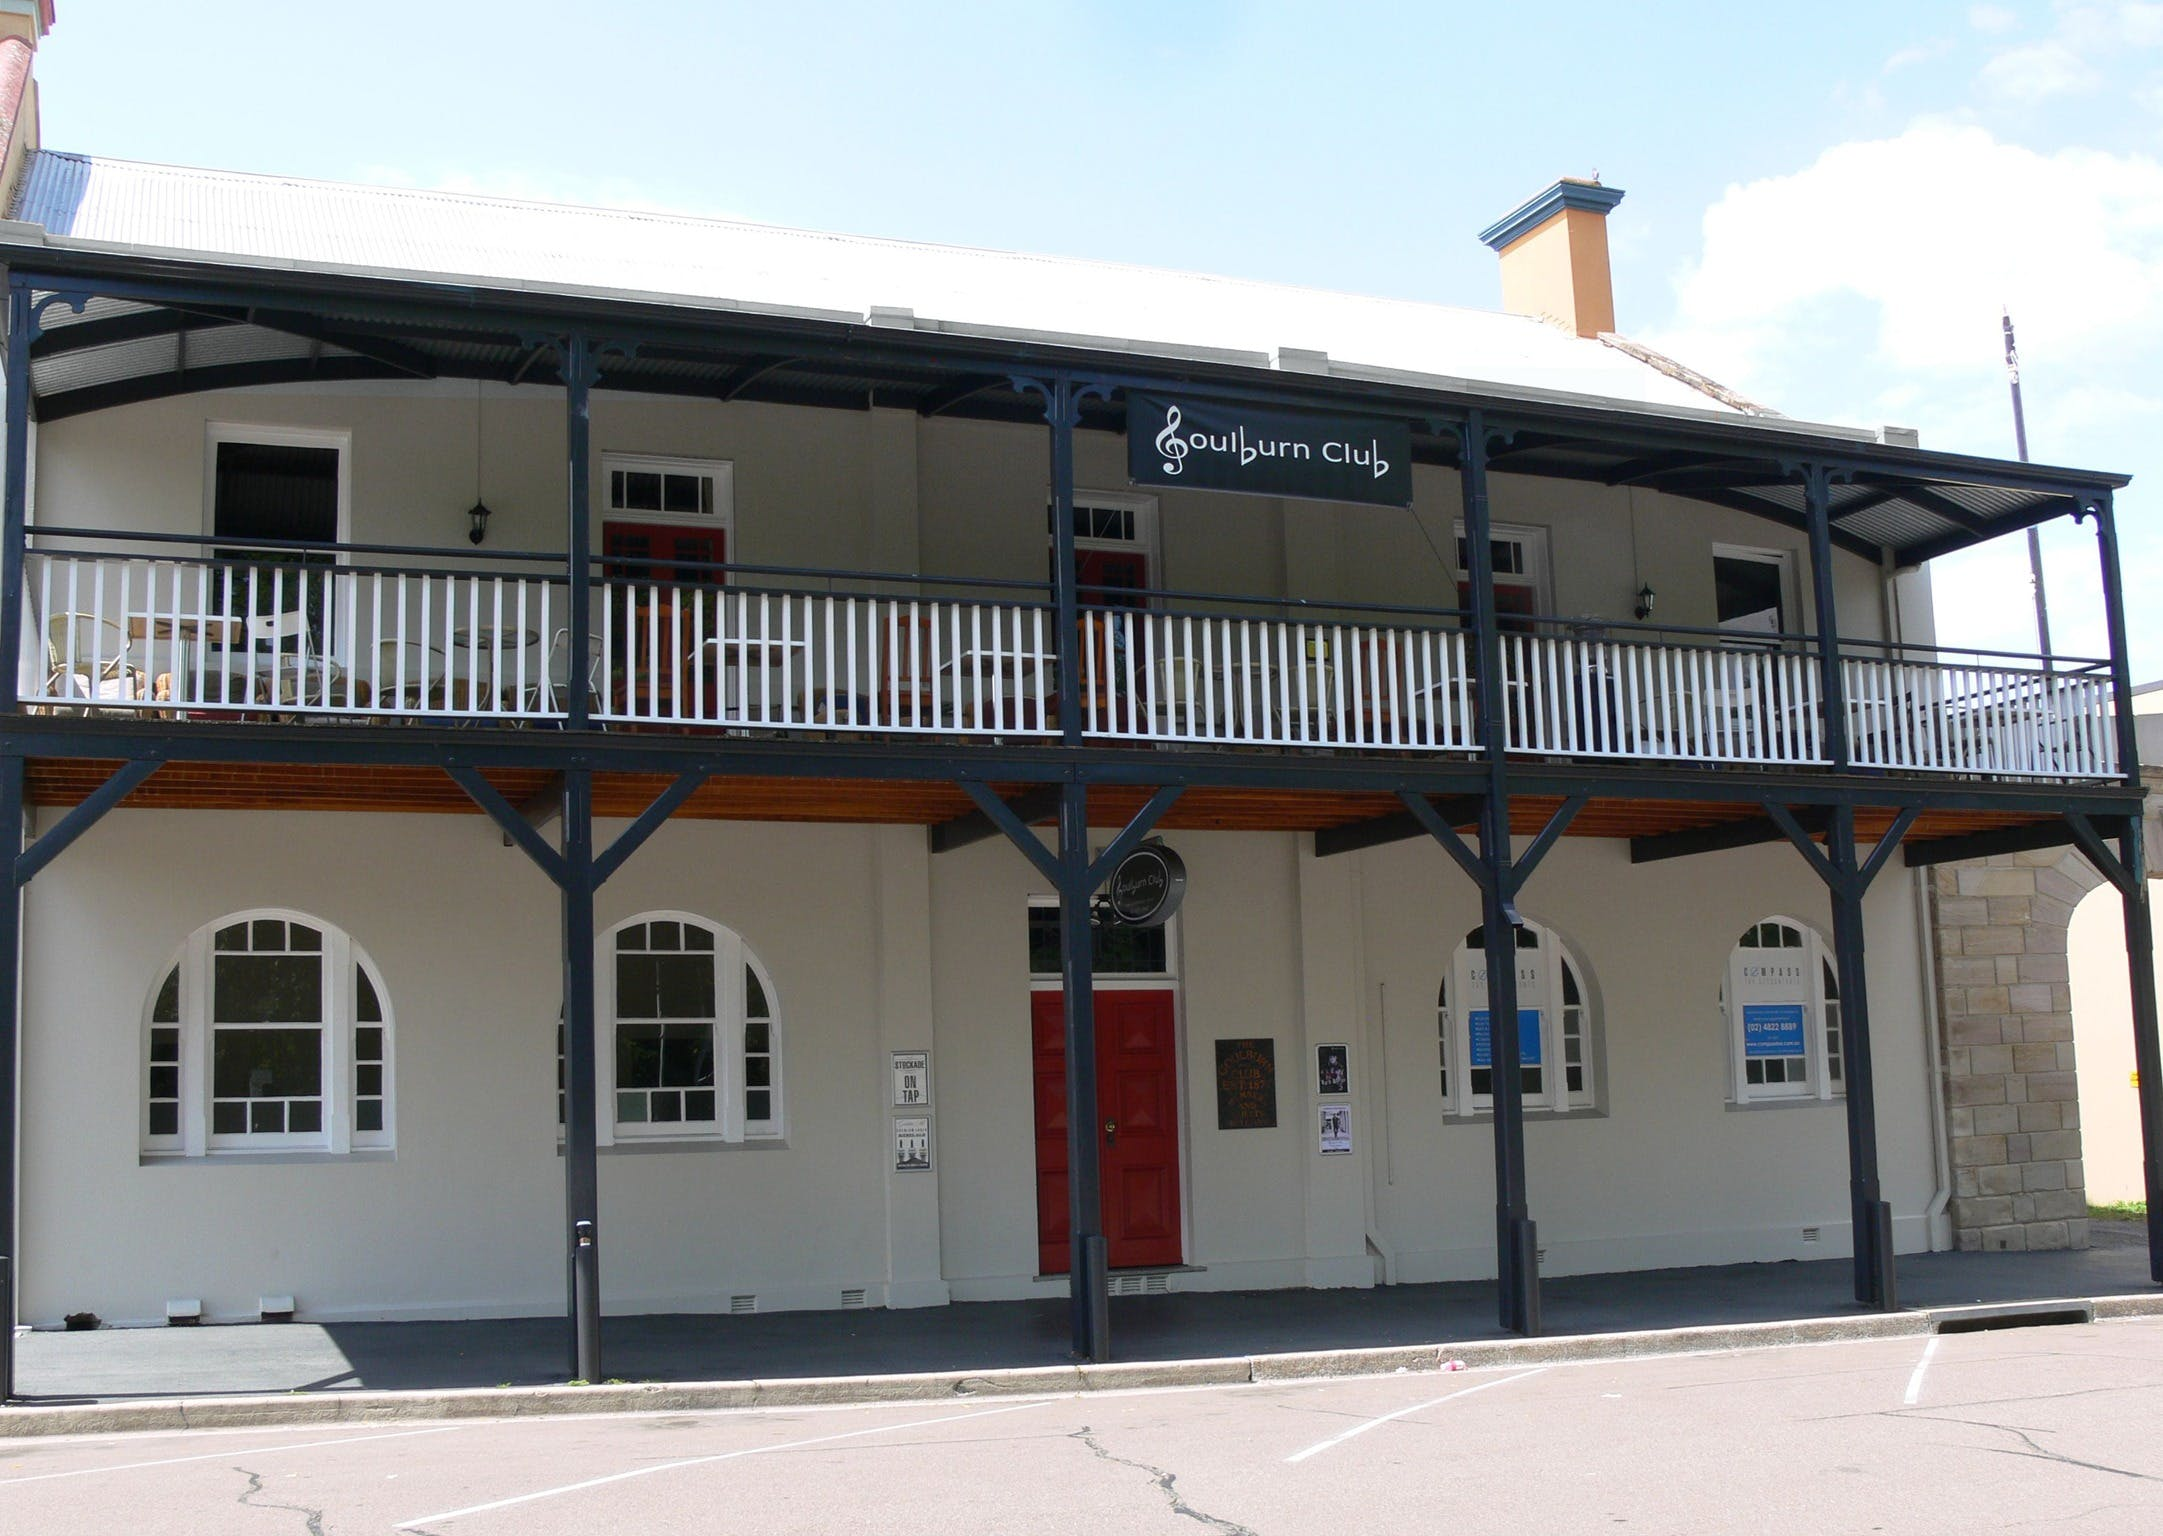 Open Mic Night at the Goulburn Club - Accommodation Batemans Bay